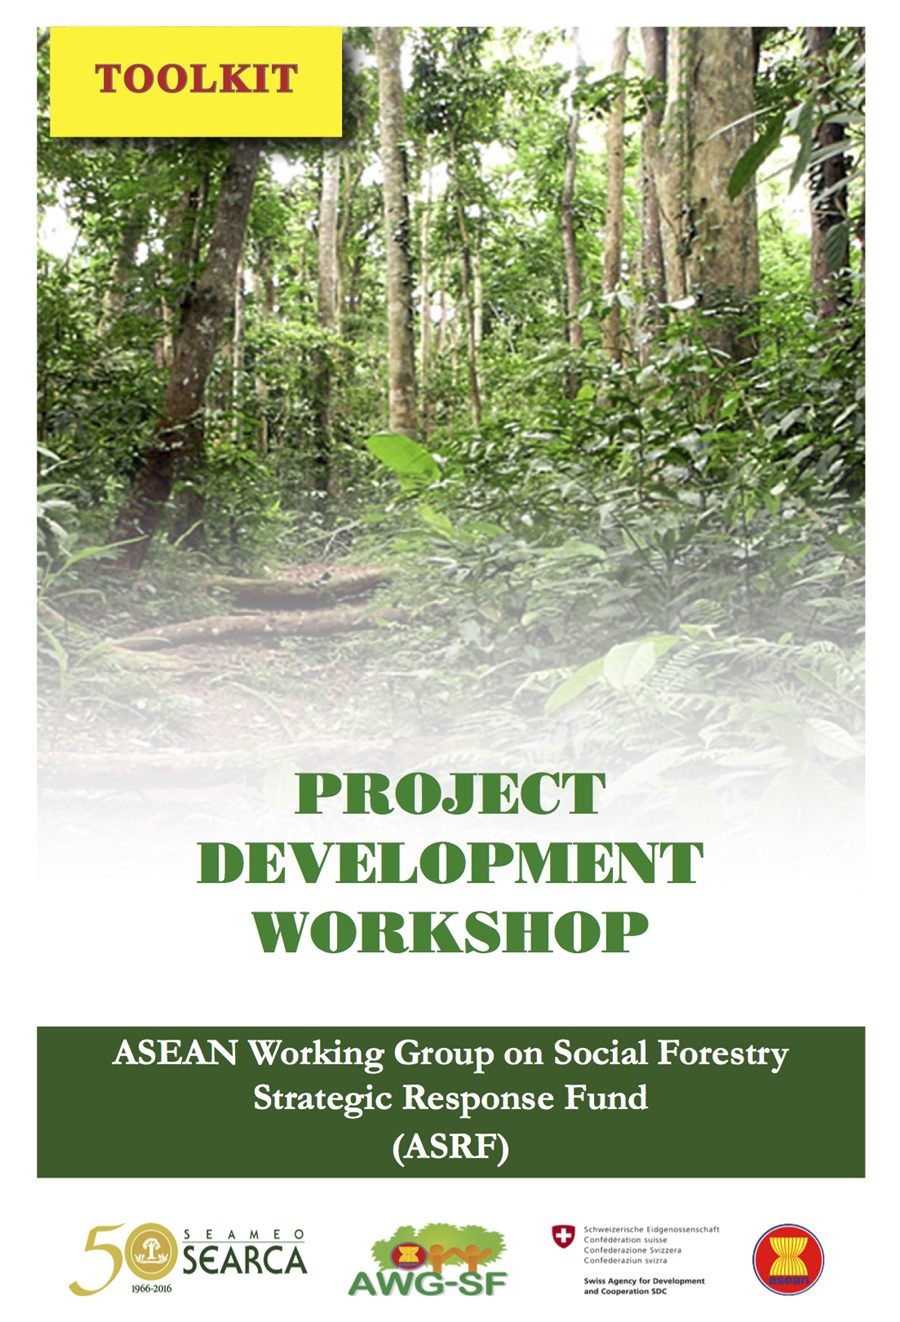 searca-to-pilot-test-the-asrf-project-development-toolkit-and-validate-the-social-forestry-gap-analysis-lao-pdr-01